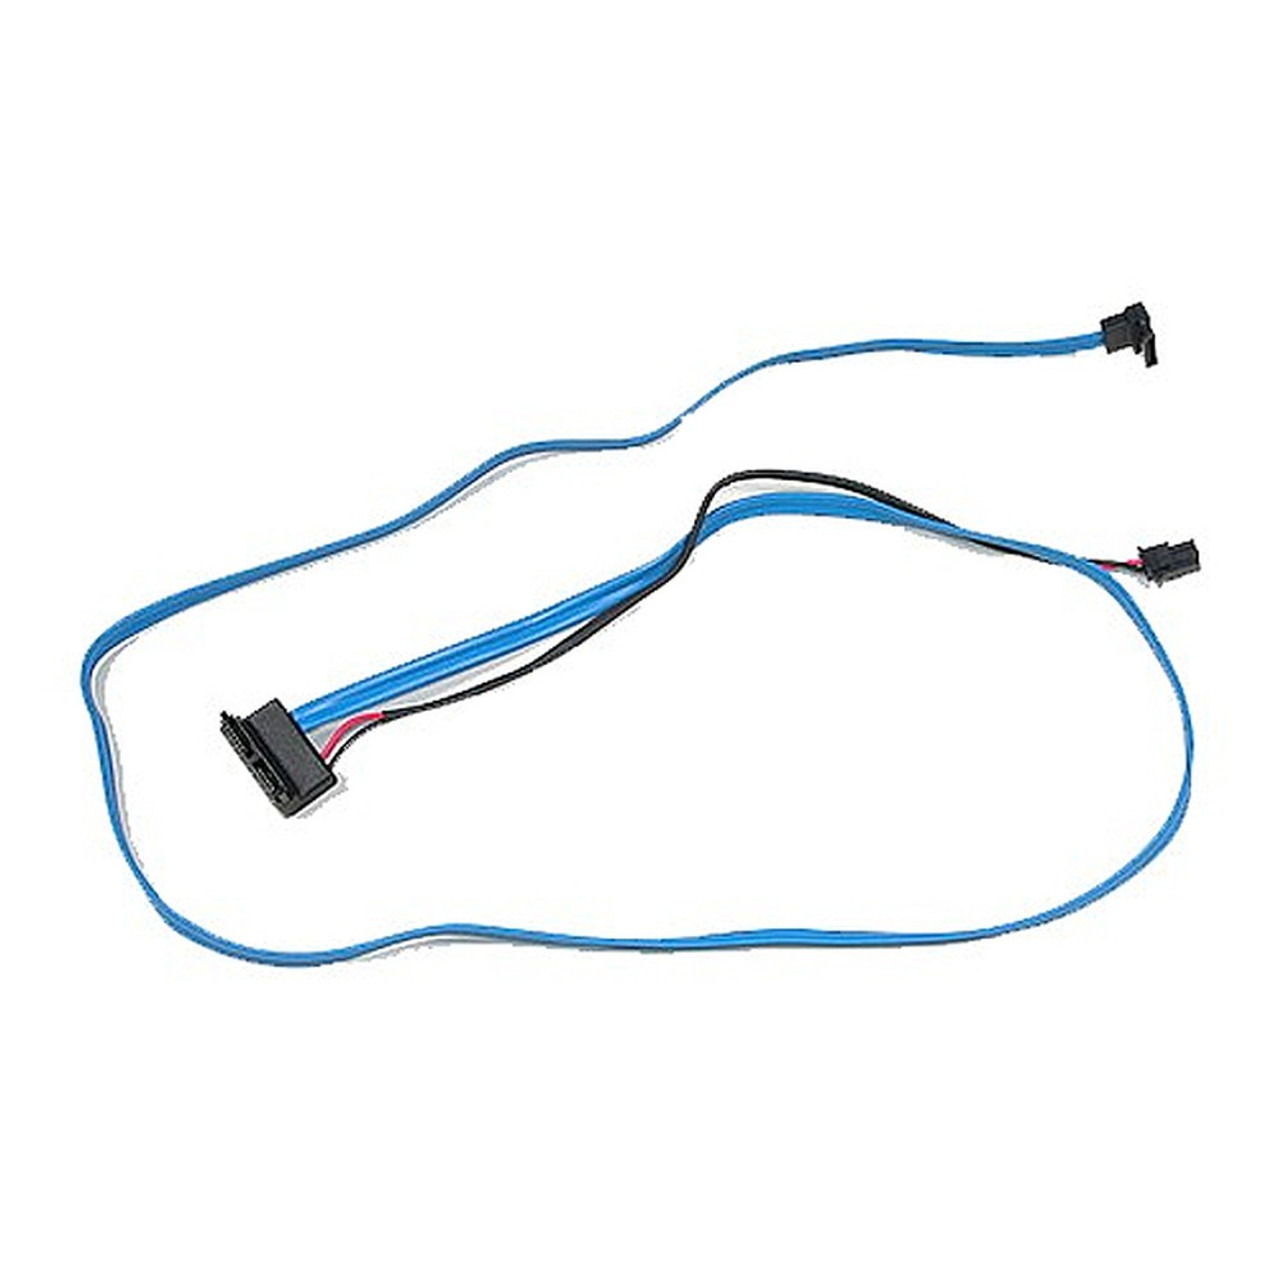 Dell PowerEdge R710 SATA Slimline Optical Drive Cable for 2 5